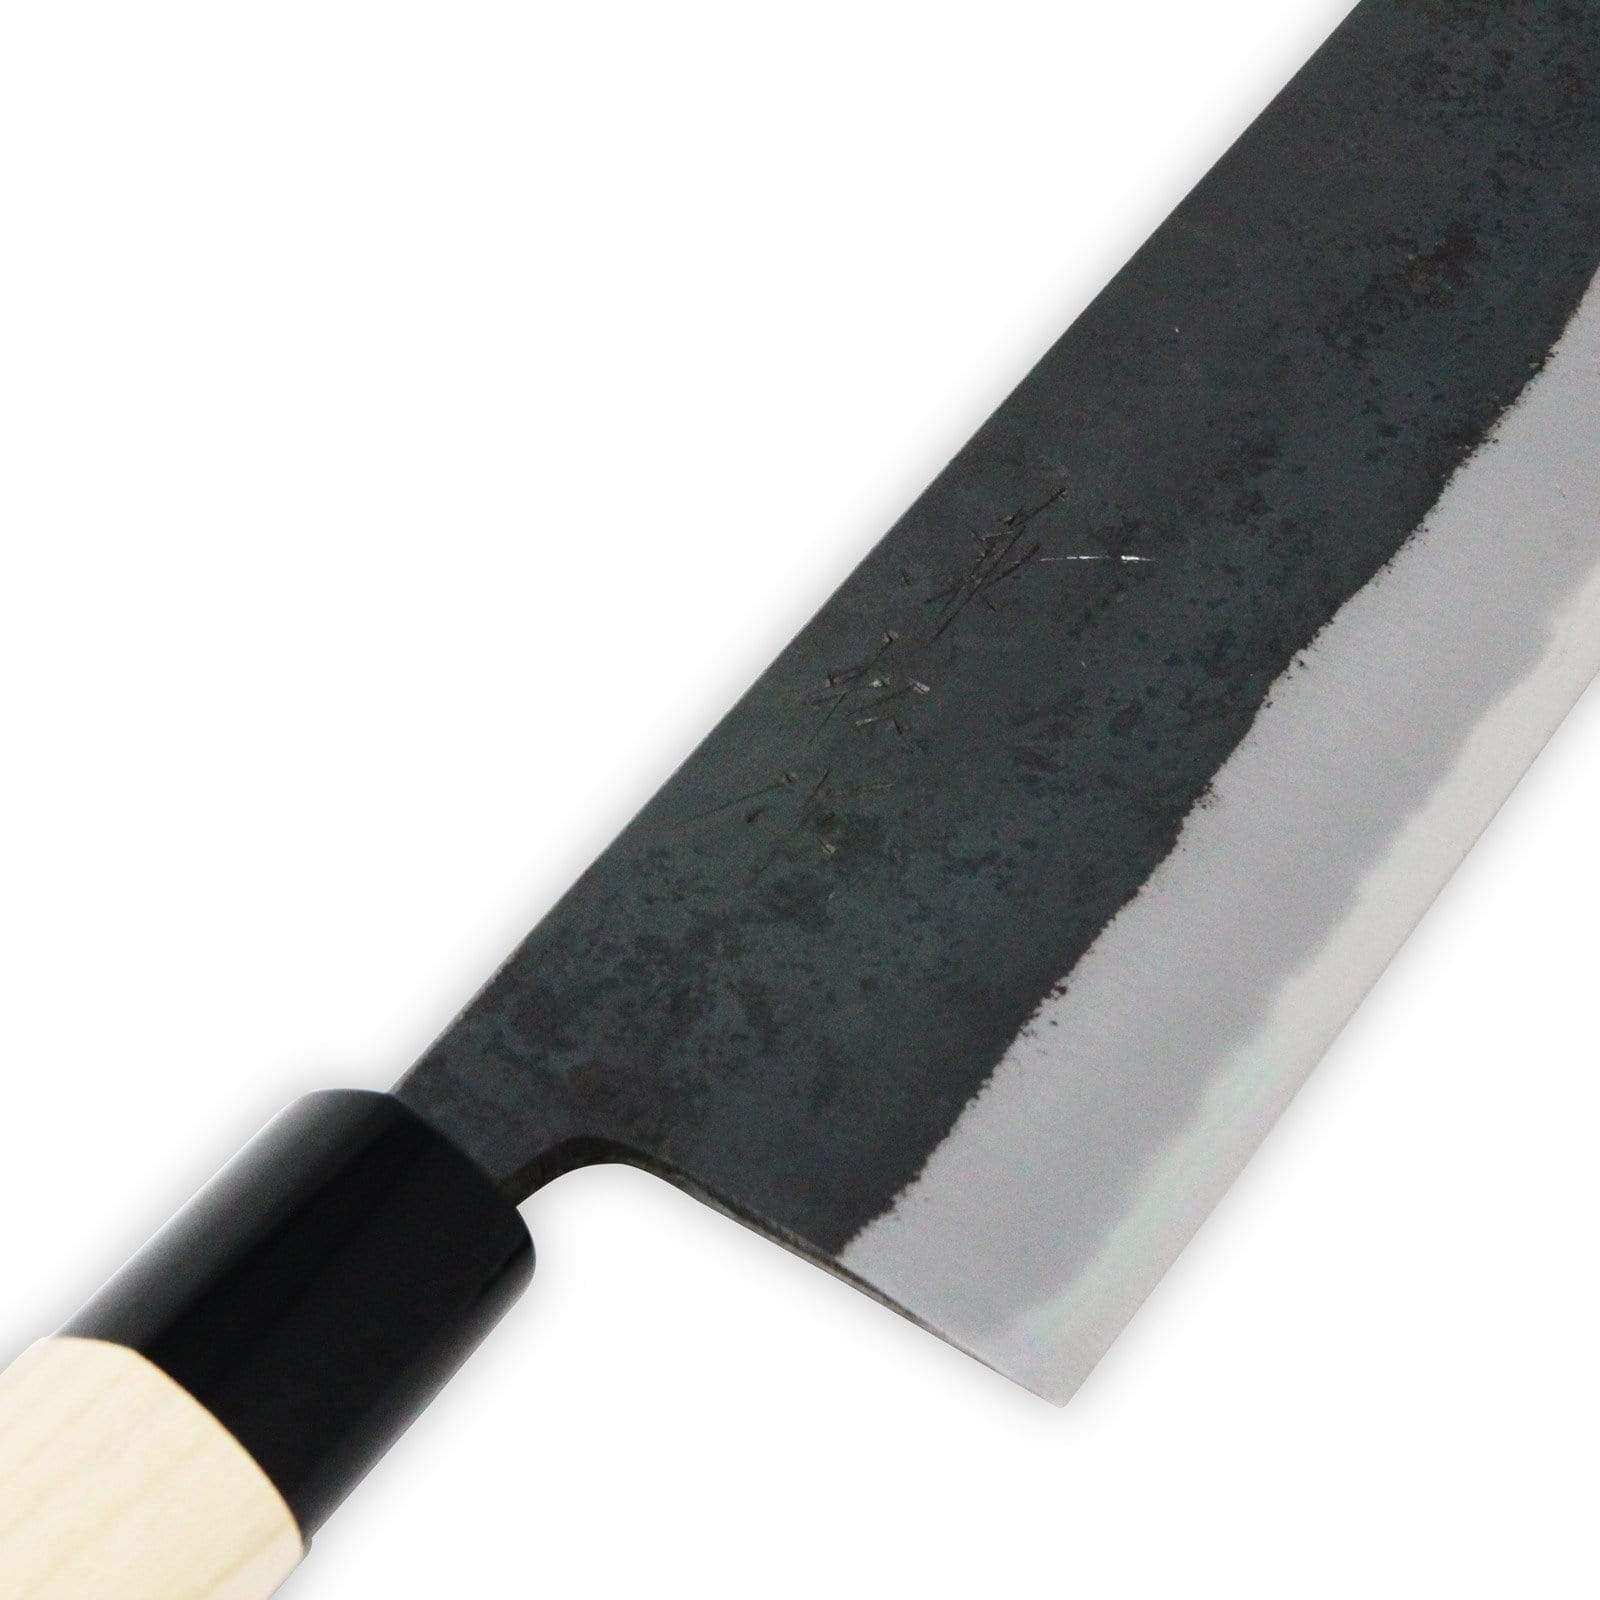 KANEMATSU Nihonko Kasumitogi Shirogami Carbon Steel Nakiri Knife 165mm Nakiri Knives